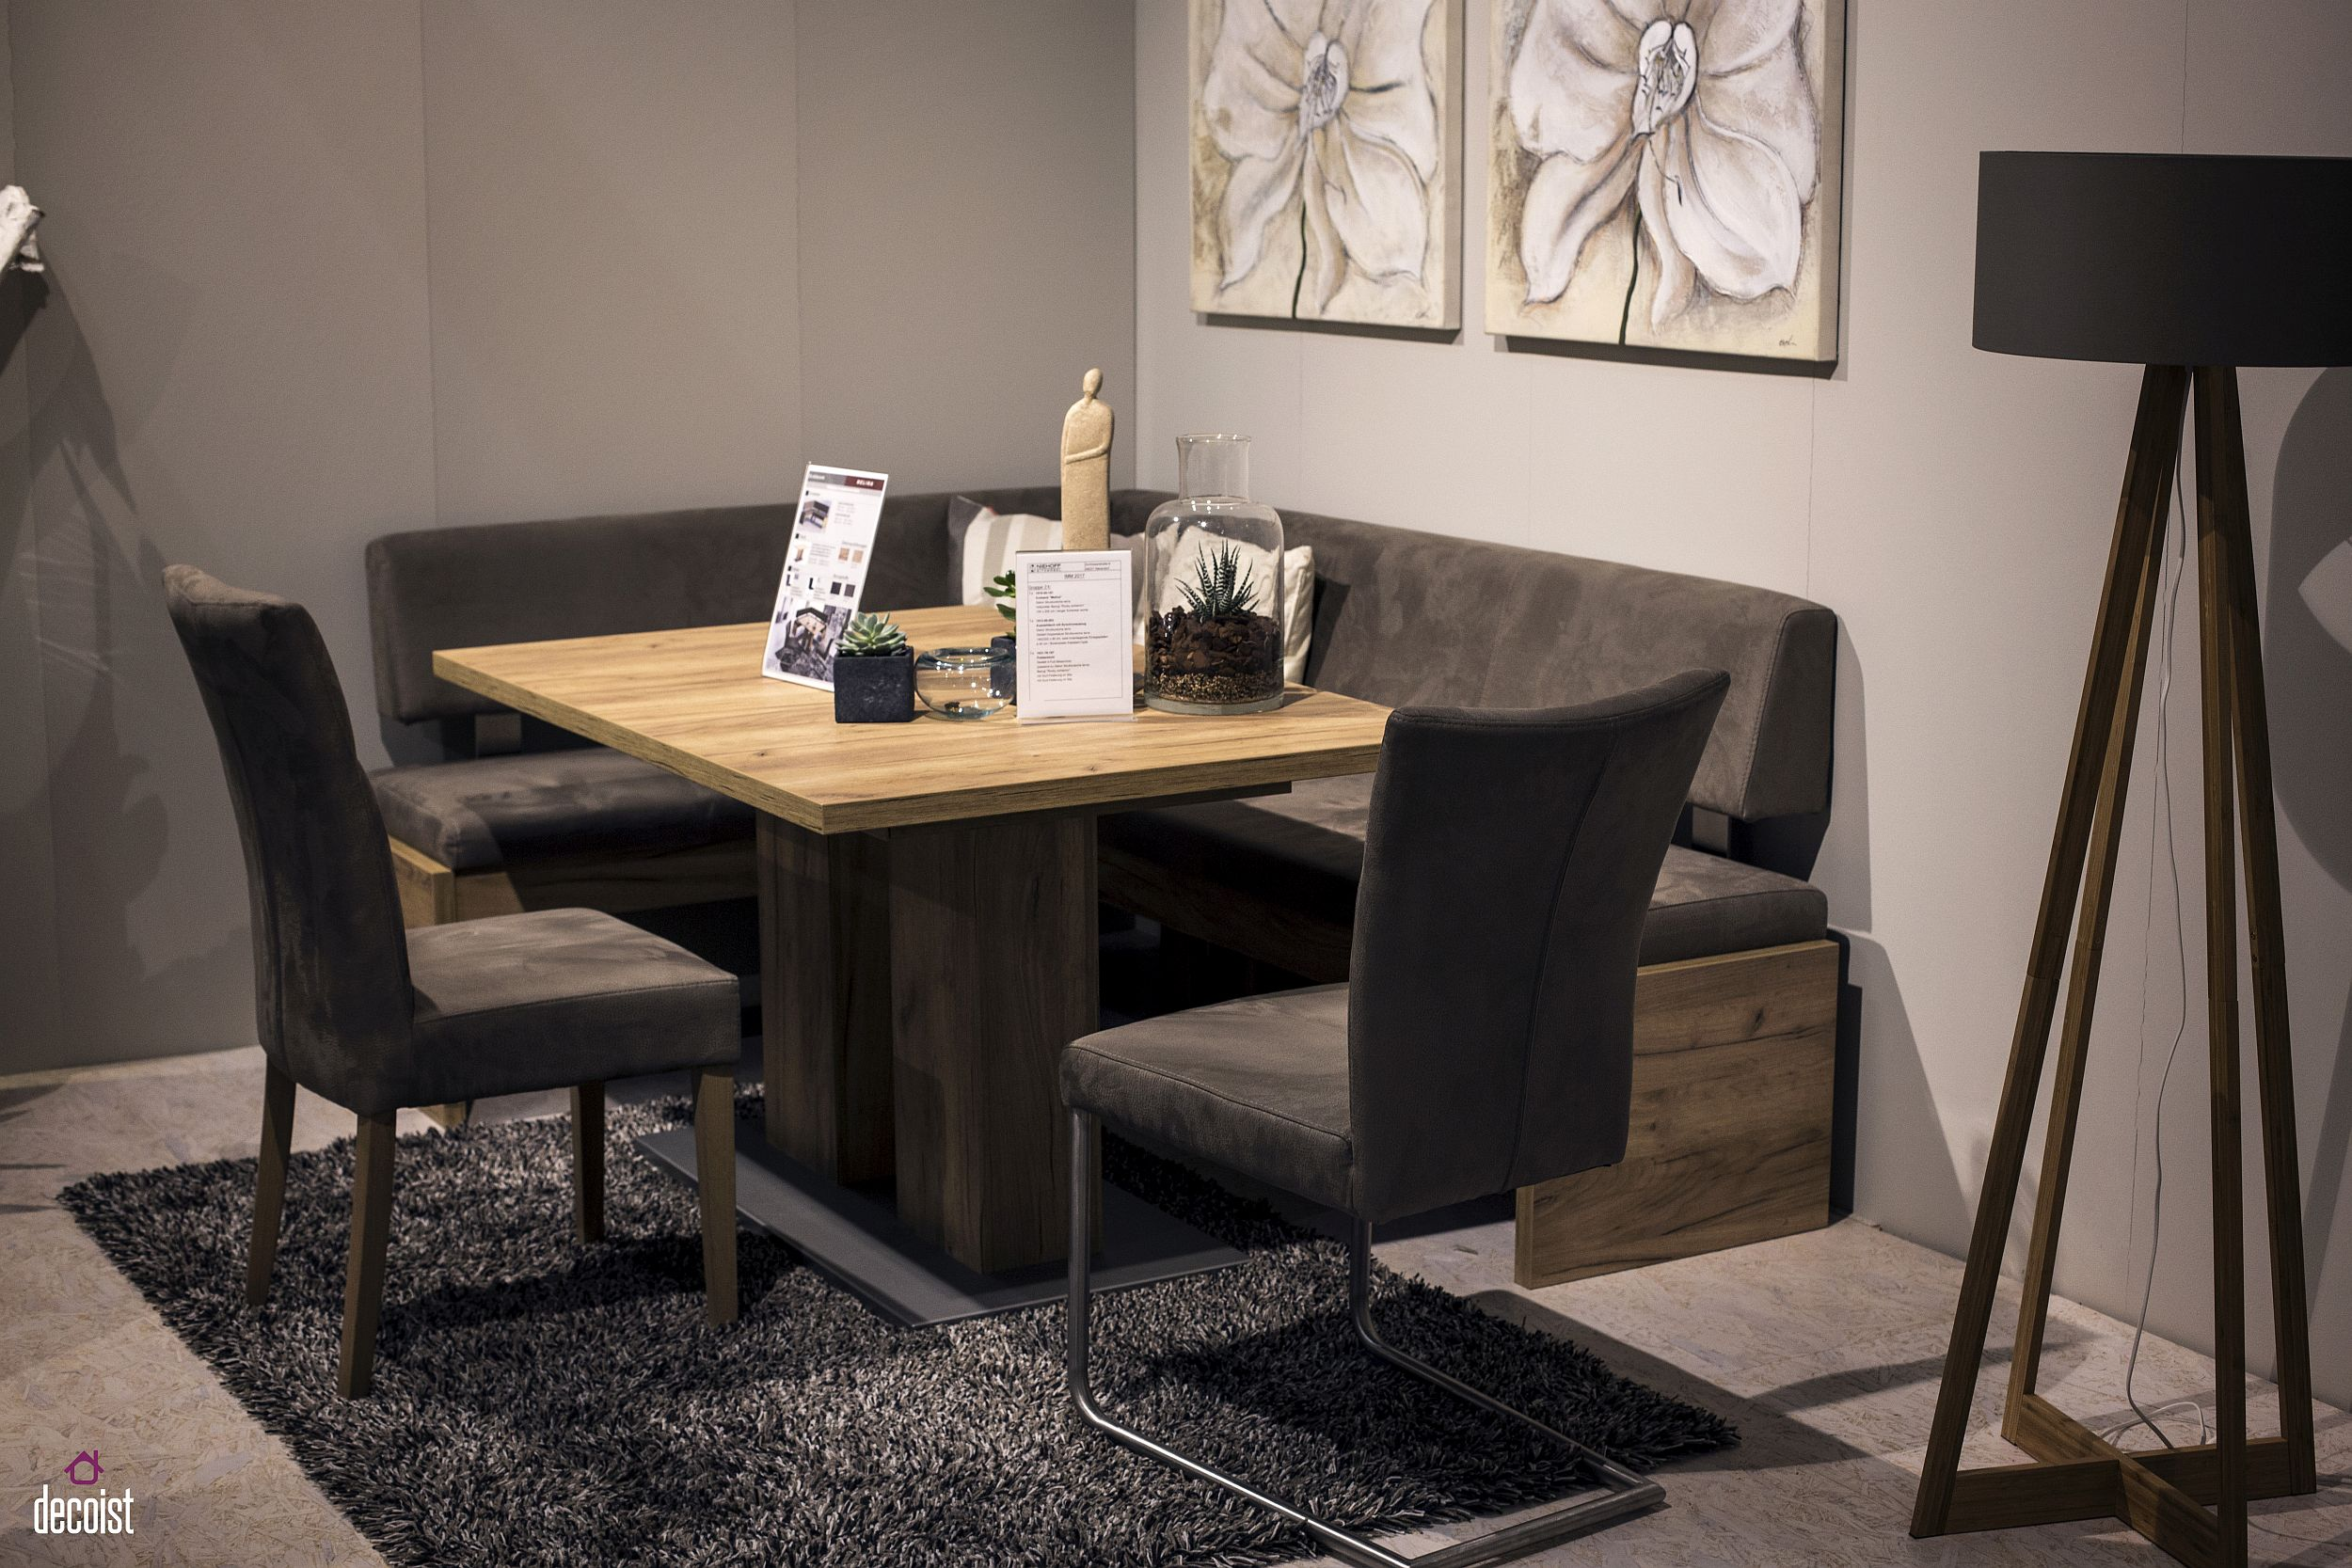 Wood and gray make a stylish combination in the small contemporary dining space